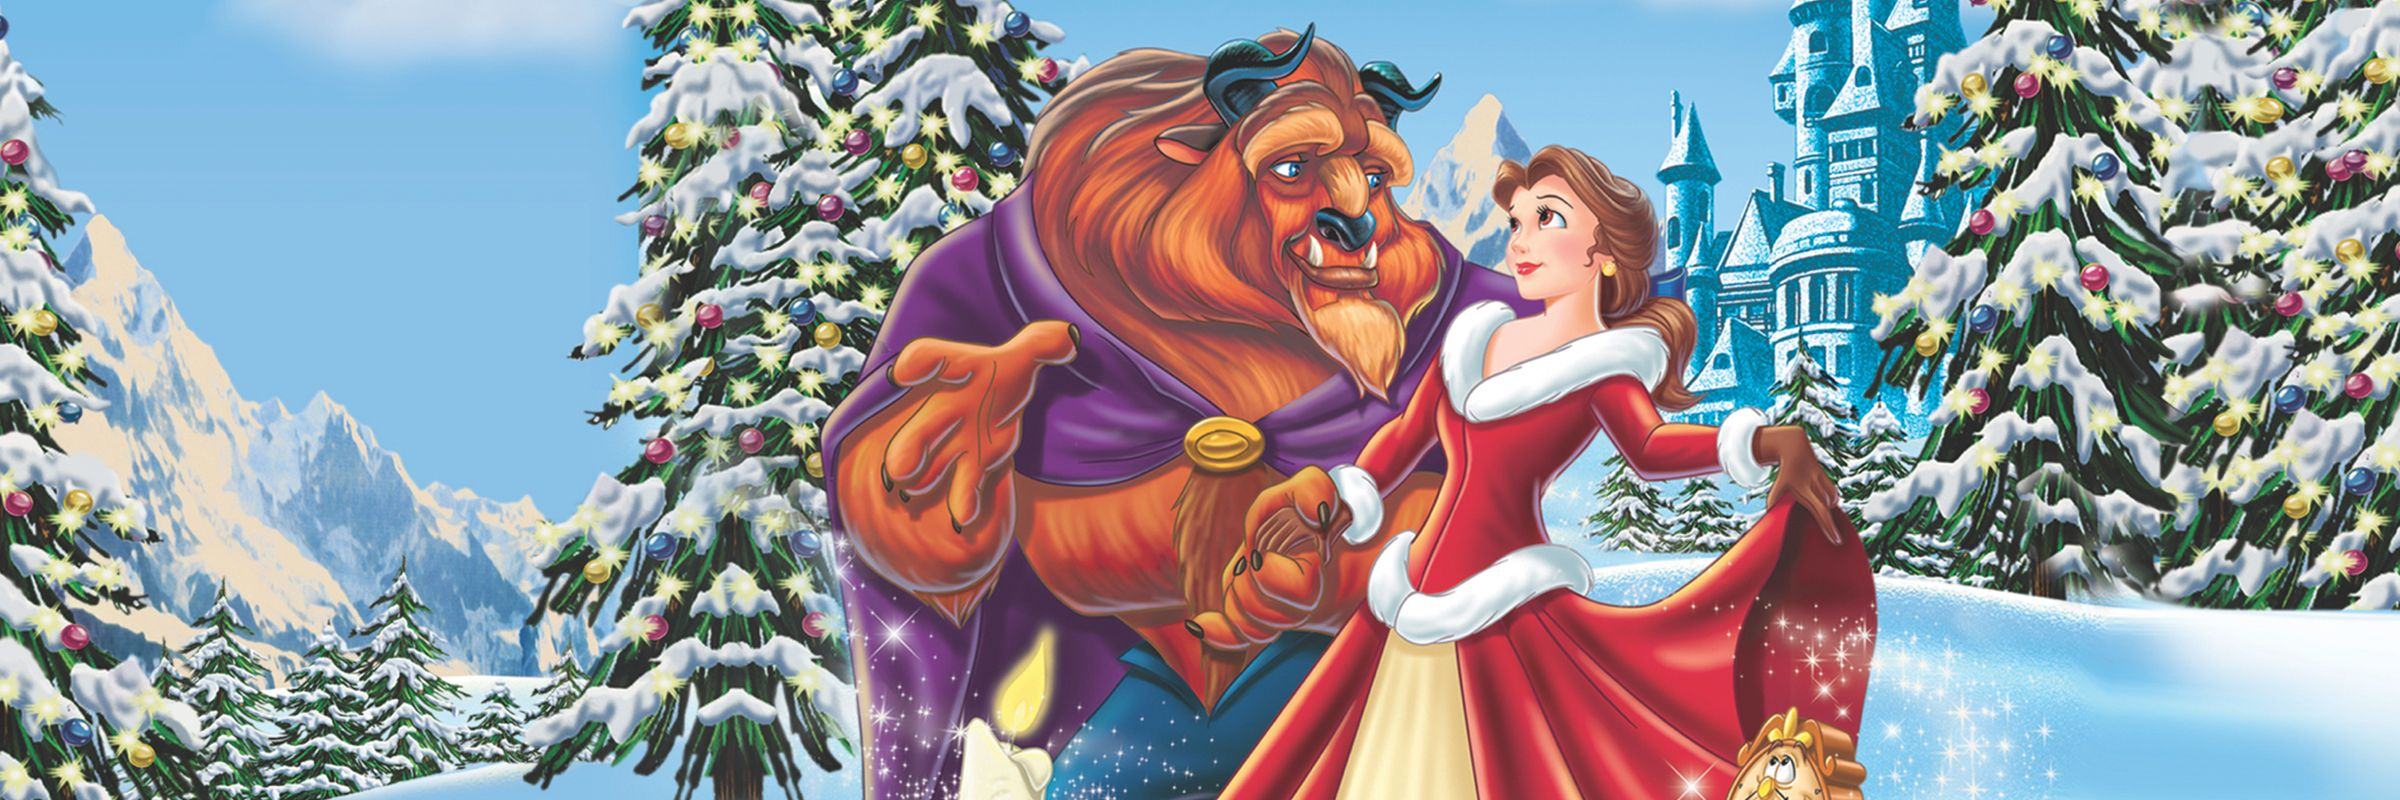 Beauty And The Beast Christmas.Beauty And The Beast The Enchanted Christmas Full Movie